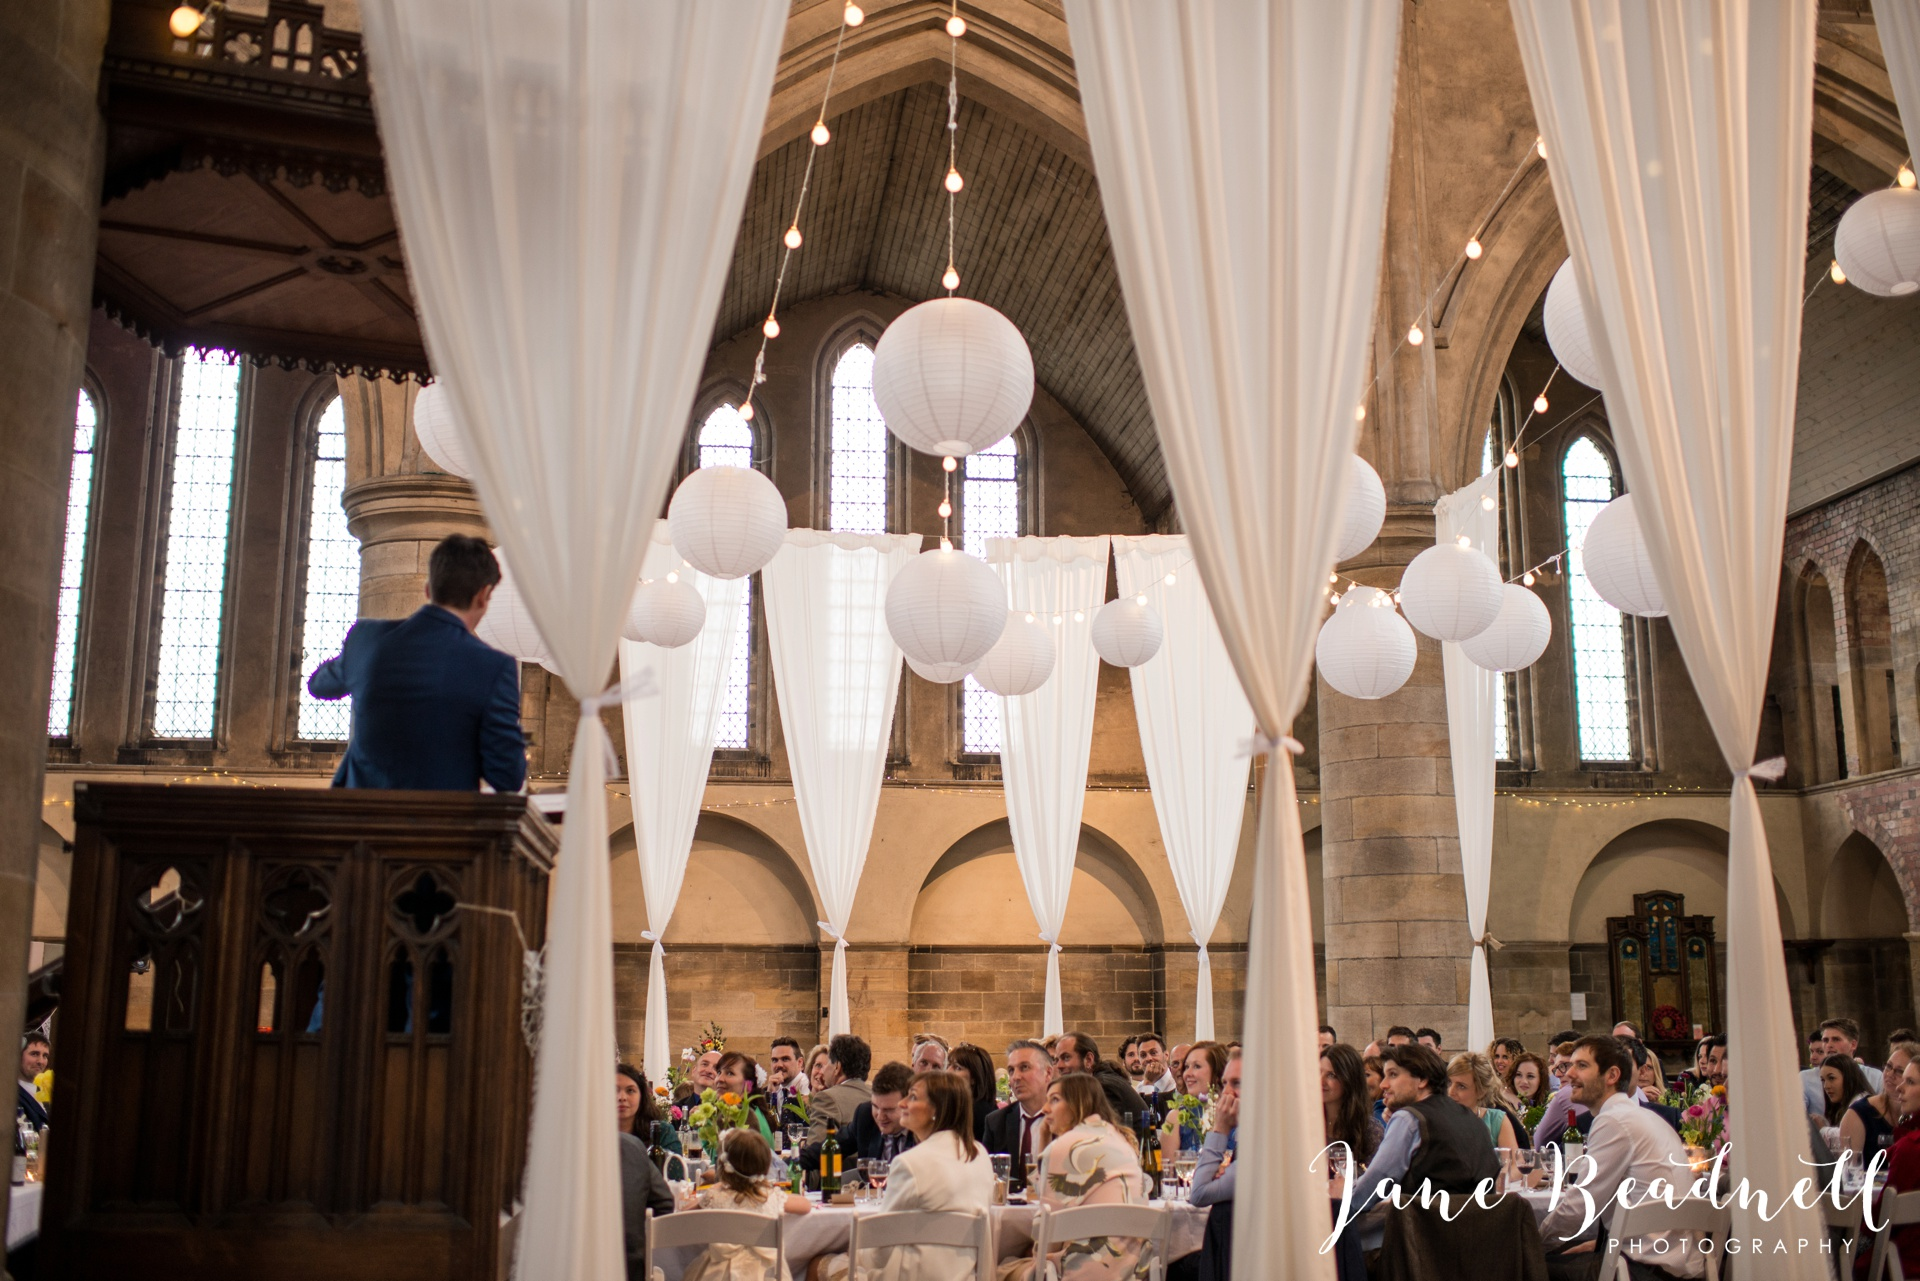 Left Bank Centre Leeds wedding photography by Jane Beadnell photography Yorkshire_0109